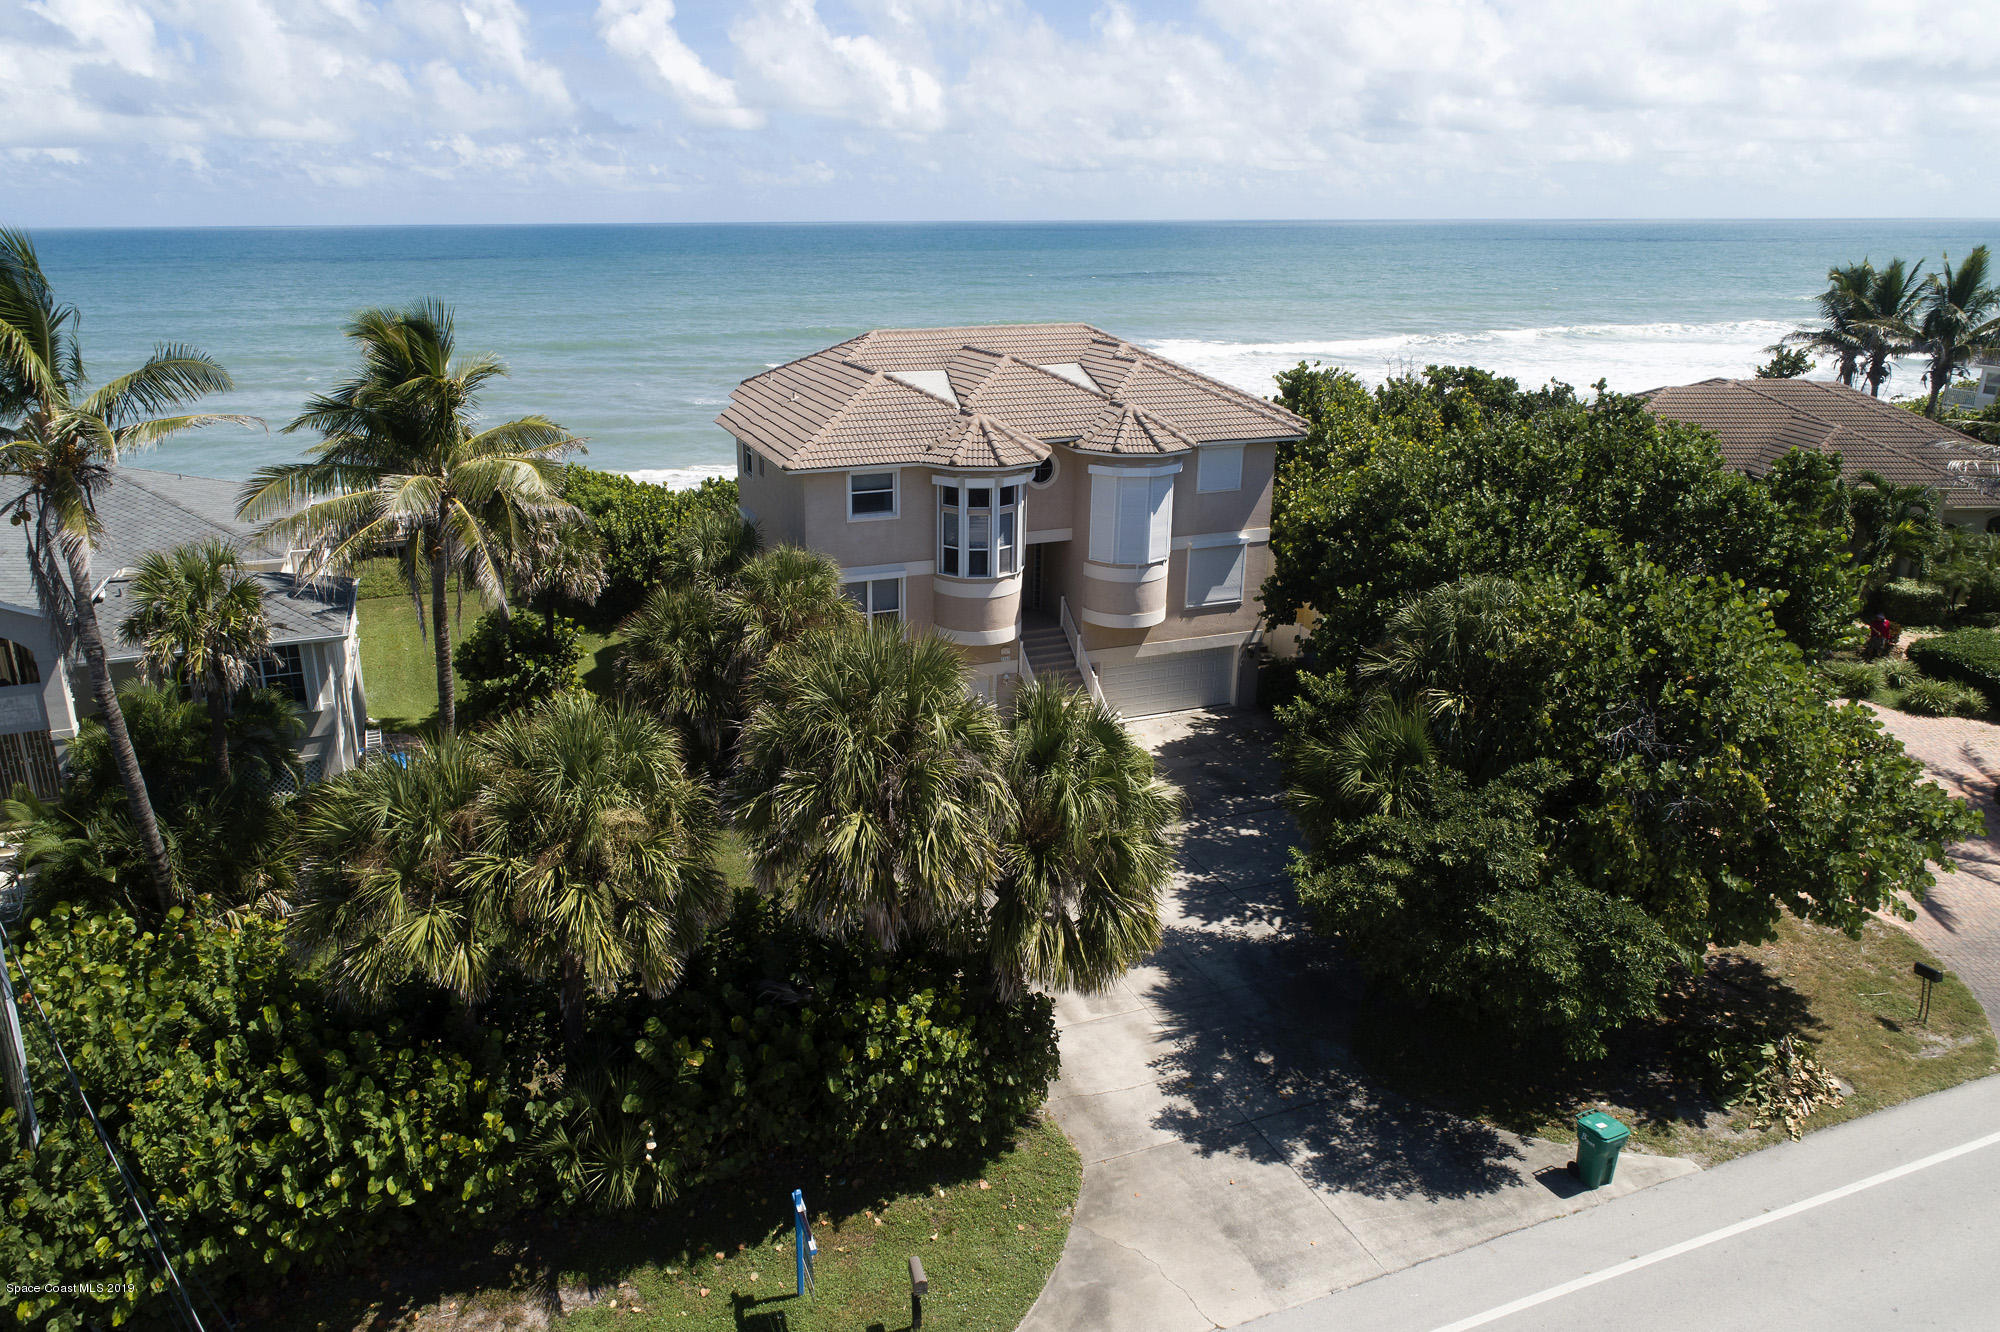 Single Family Home for Rent at 3165 S Highway A1a 3165 S Highway A1a Melbourne Beach, Florida 32951 United States